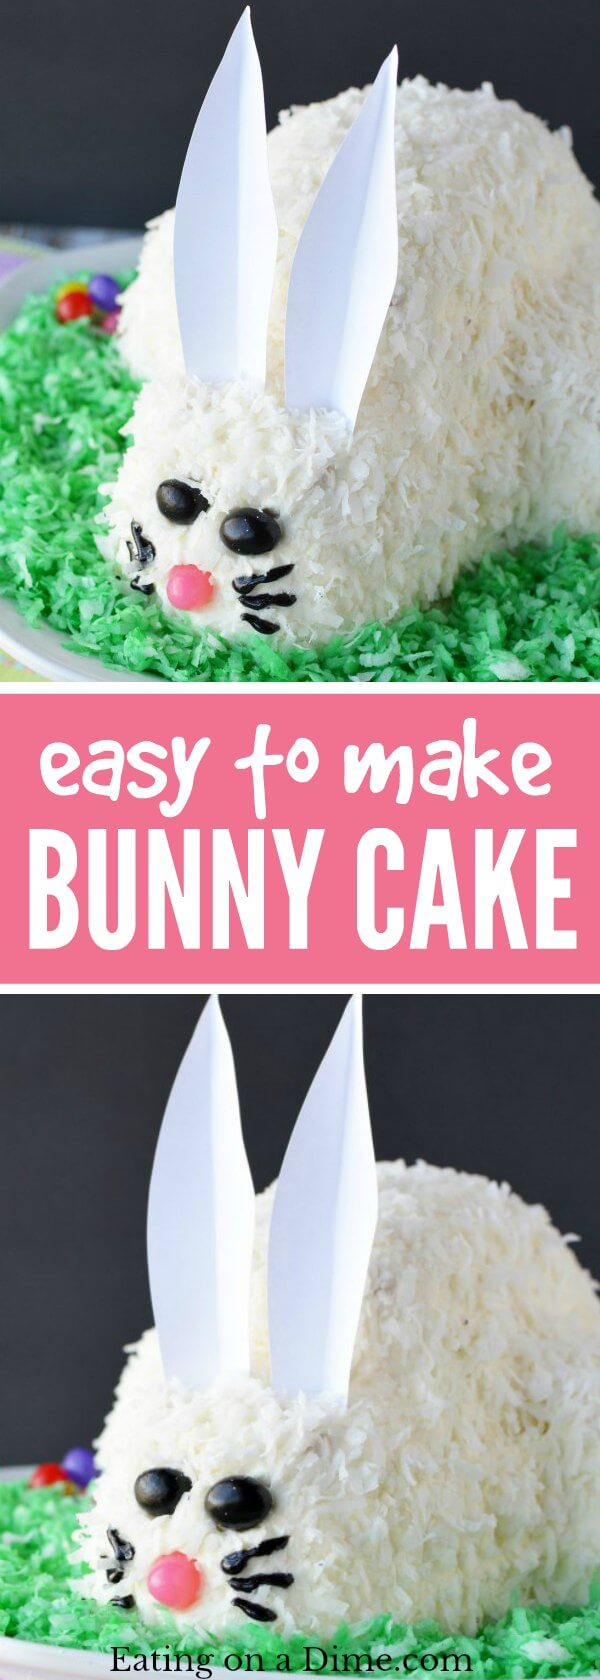 This adorable Easter Bunny Cake will be a hit! You will love how simple this easy bunny cake is. The flaky coconut and jelly beans come together to make this bunny cake recipe so cute! Try this Easter cake recipe! We love easy Easter cakes!